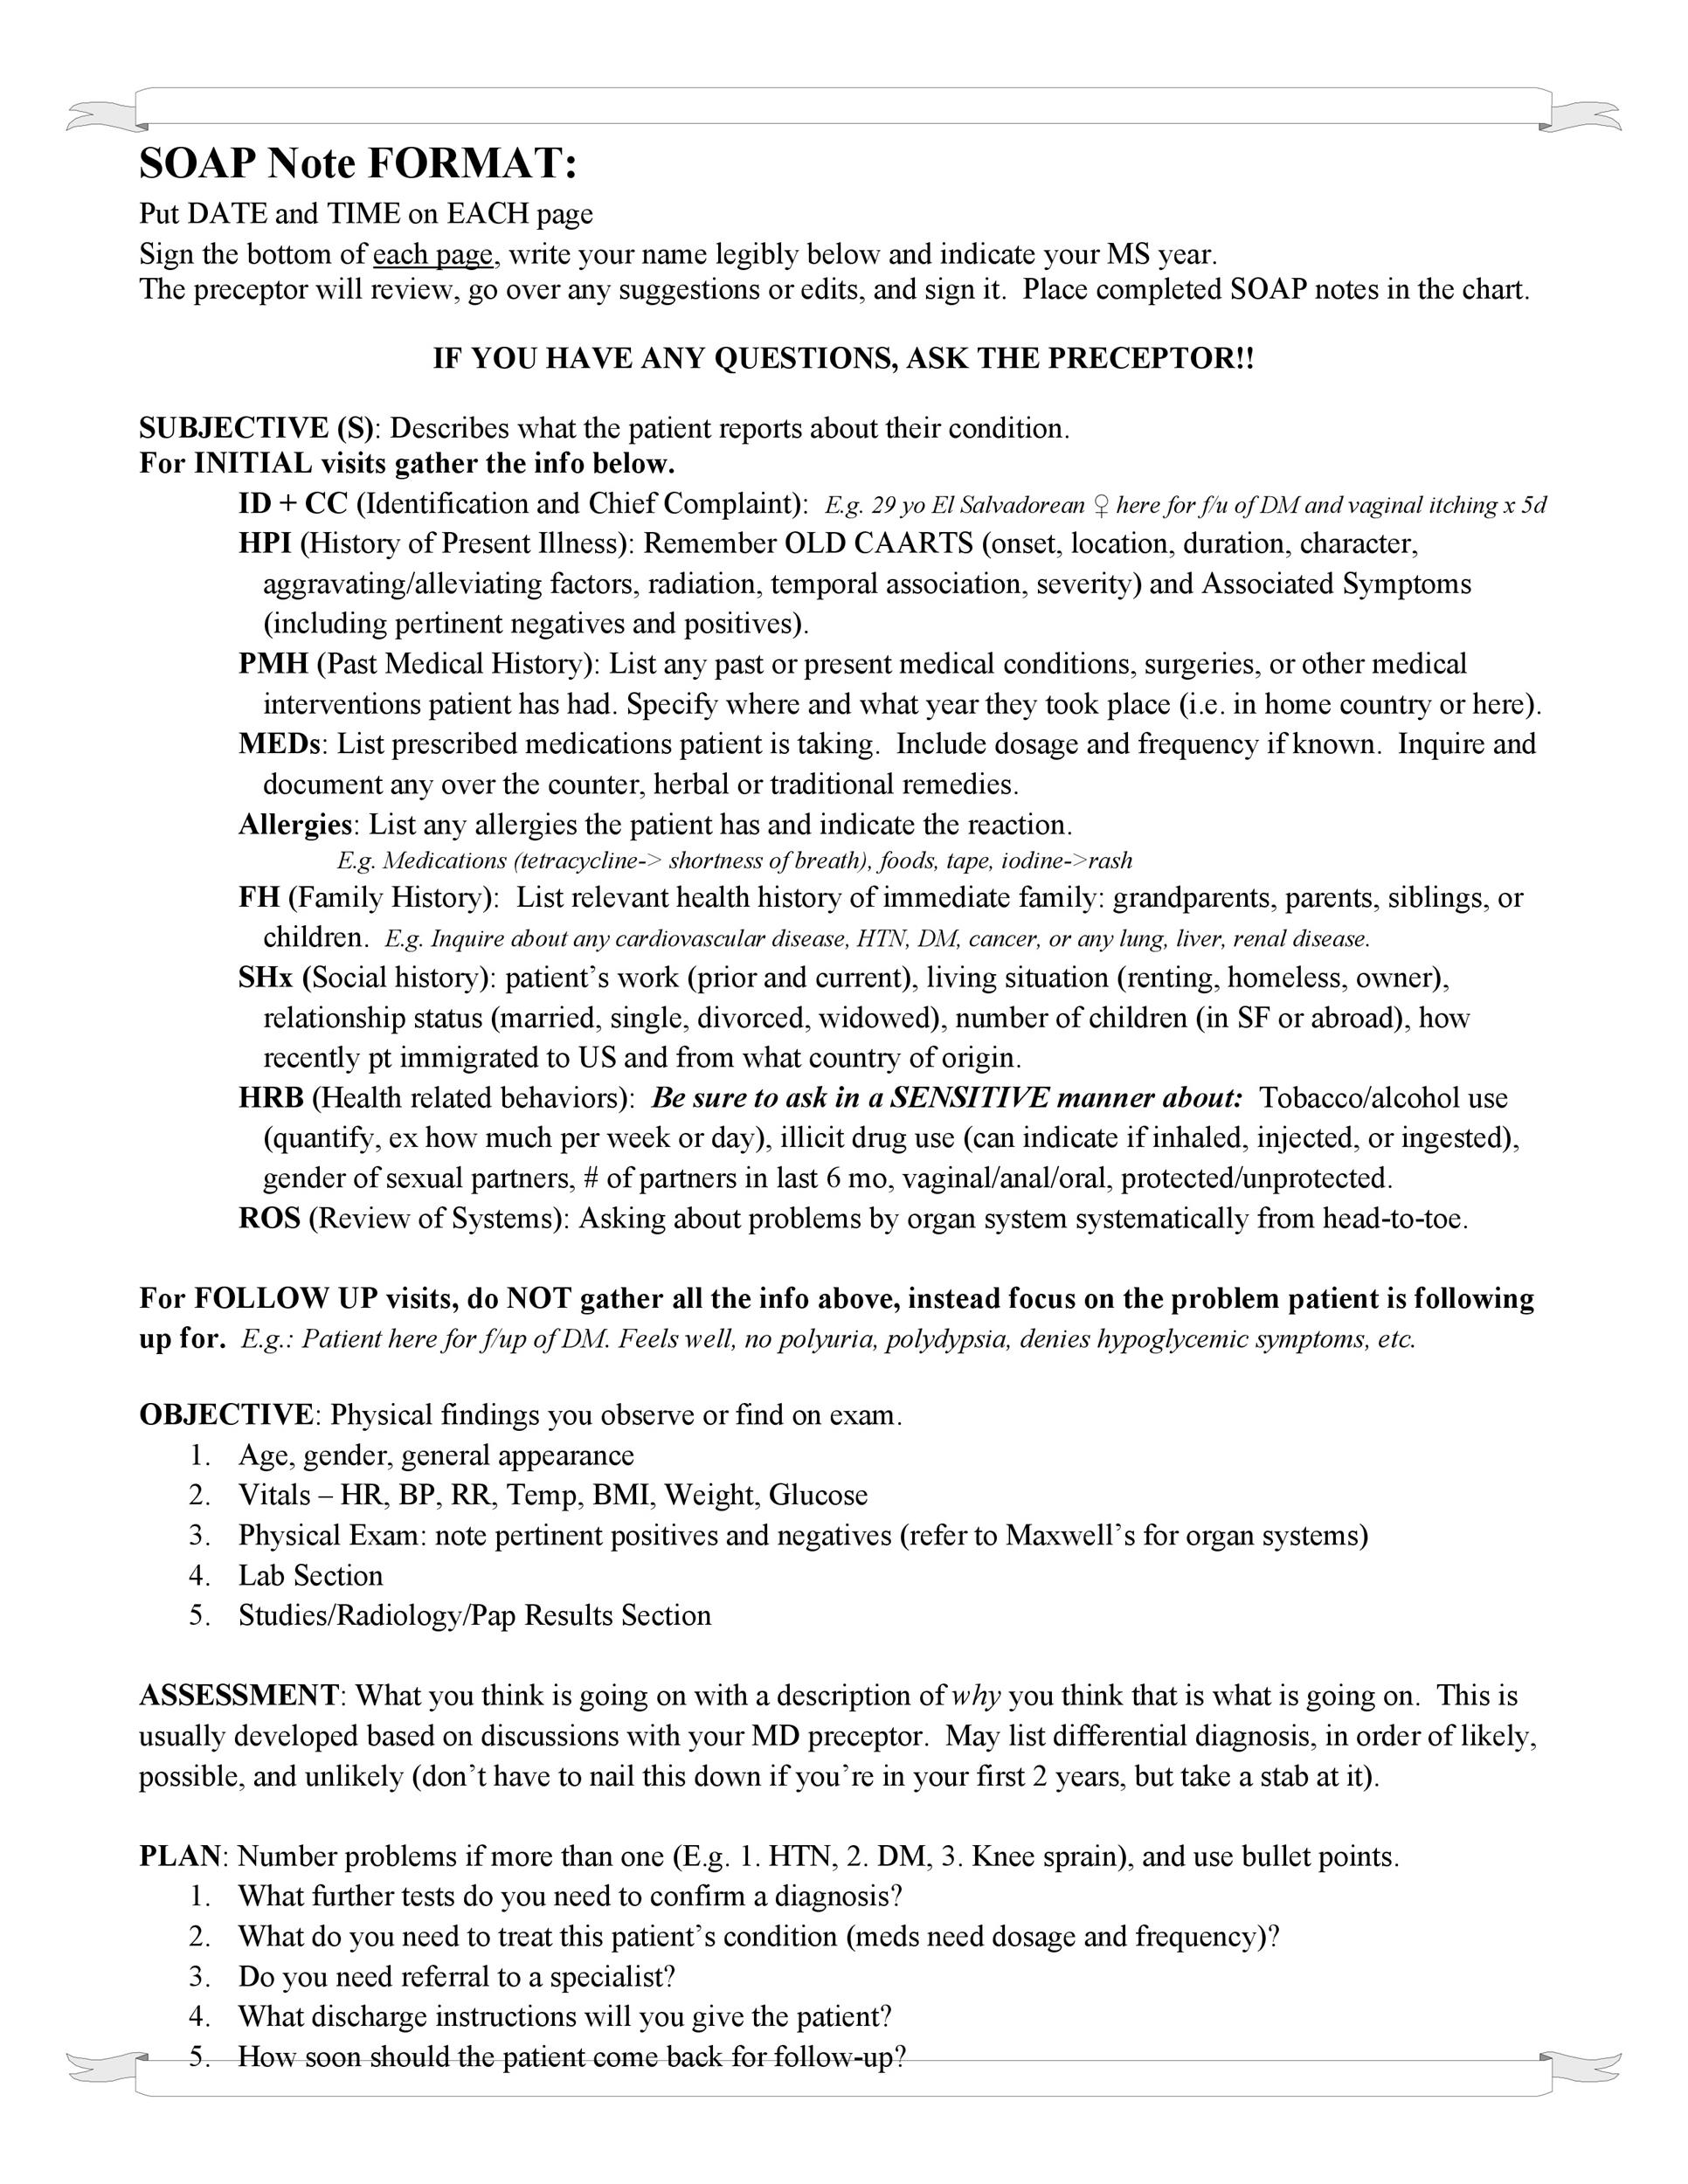 Free Soap Note Template 23